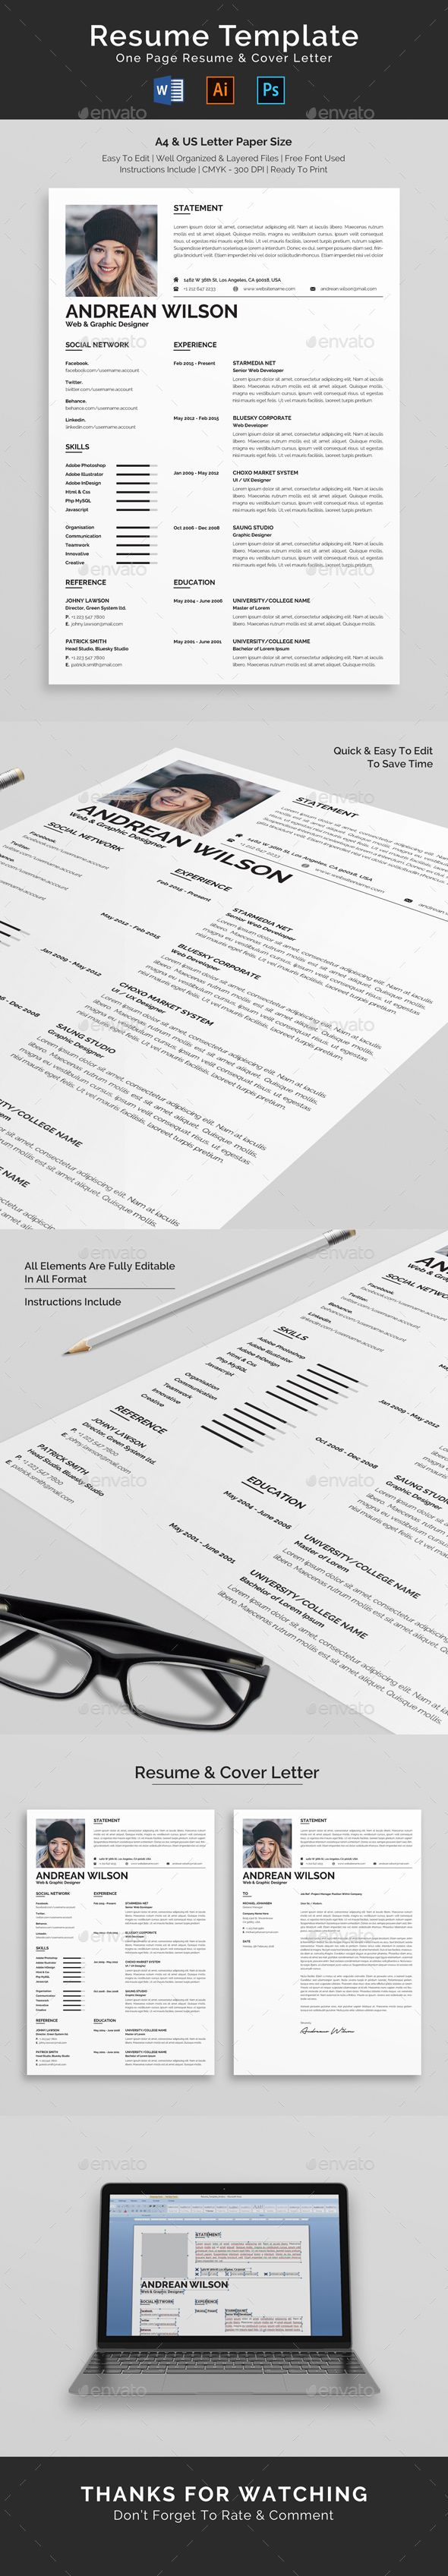 Resume #female #ms word  • Download here → https://graphicriver.net/item/resume/21432573?ref=pxcr